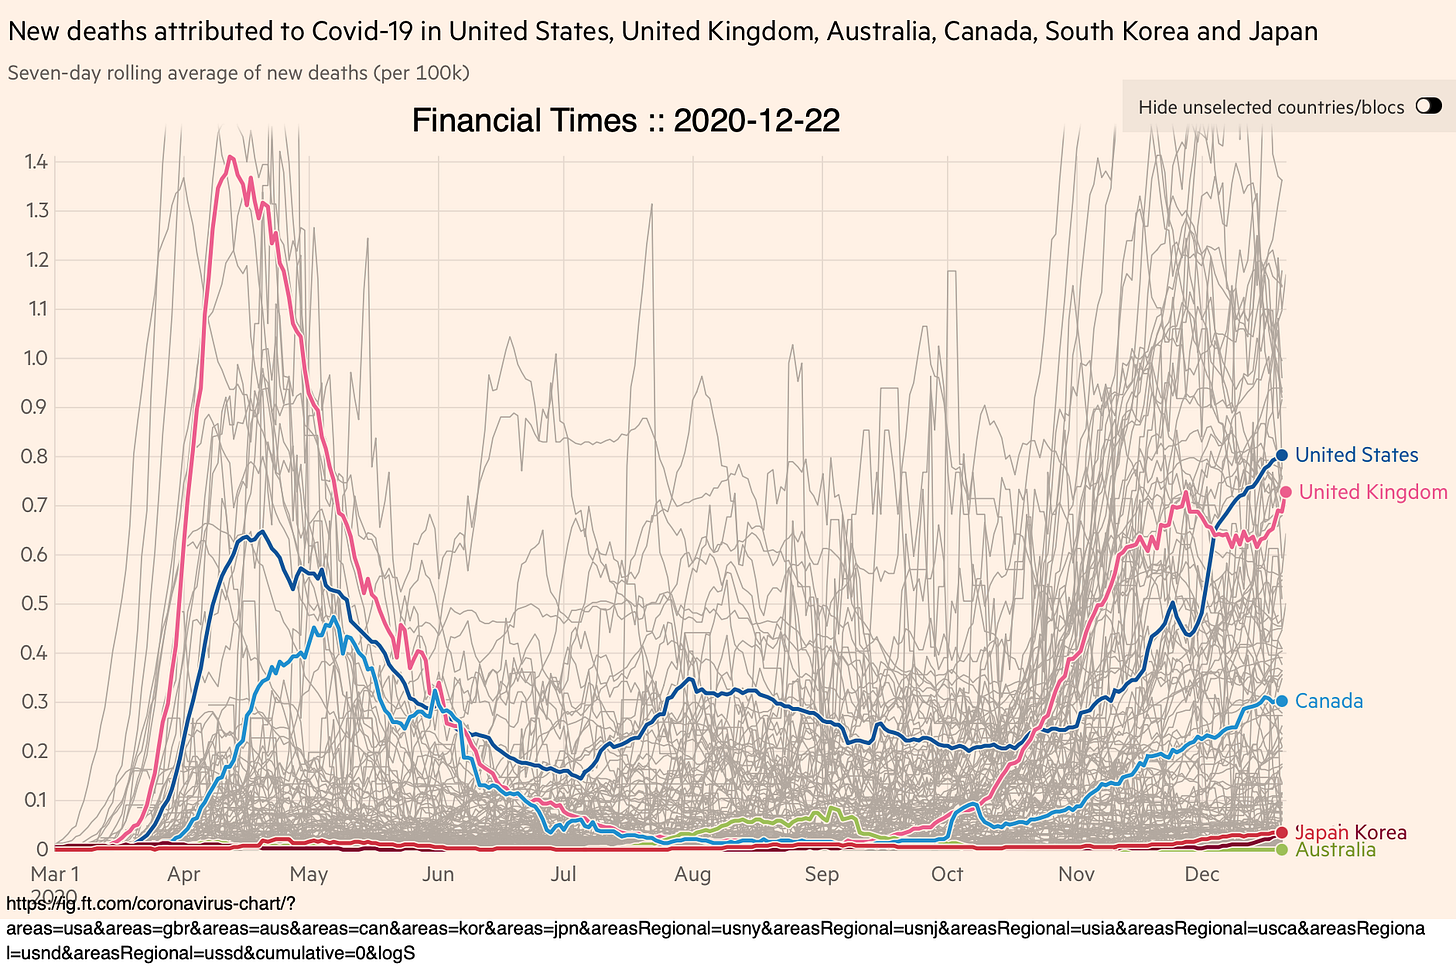 Coronavirus plague deaths since March in U.S., U.K., Australia, Canada, South Korea, and Japan. From the Financial Times